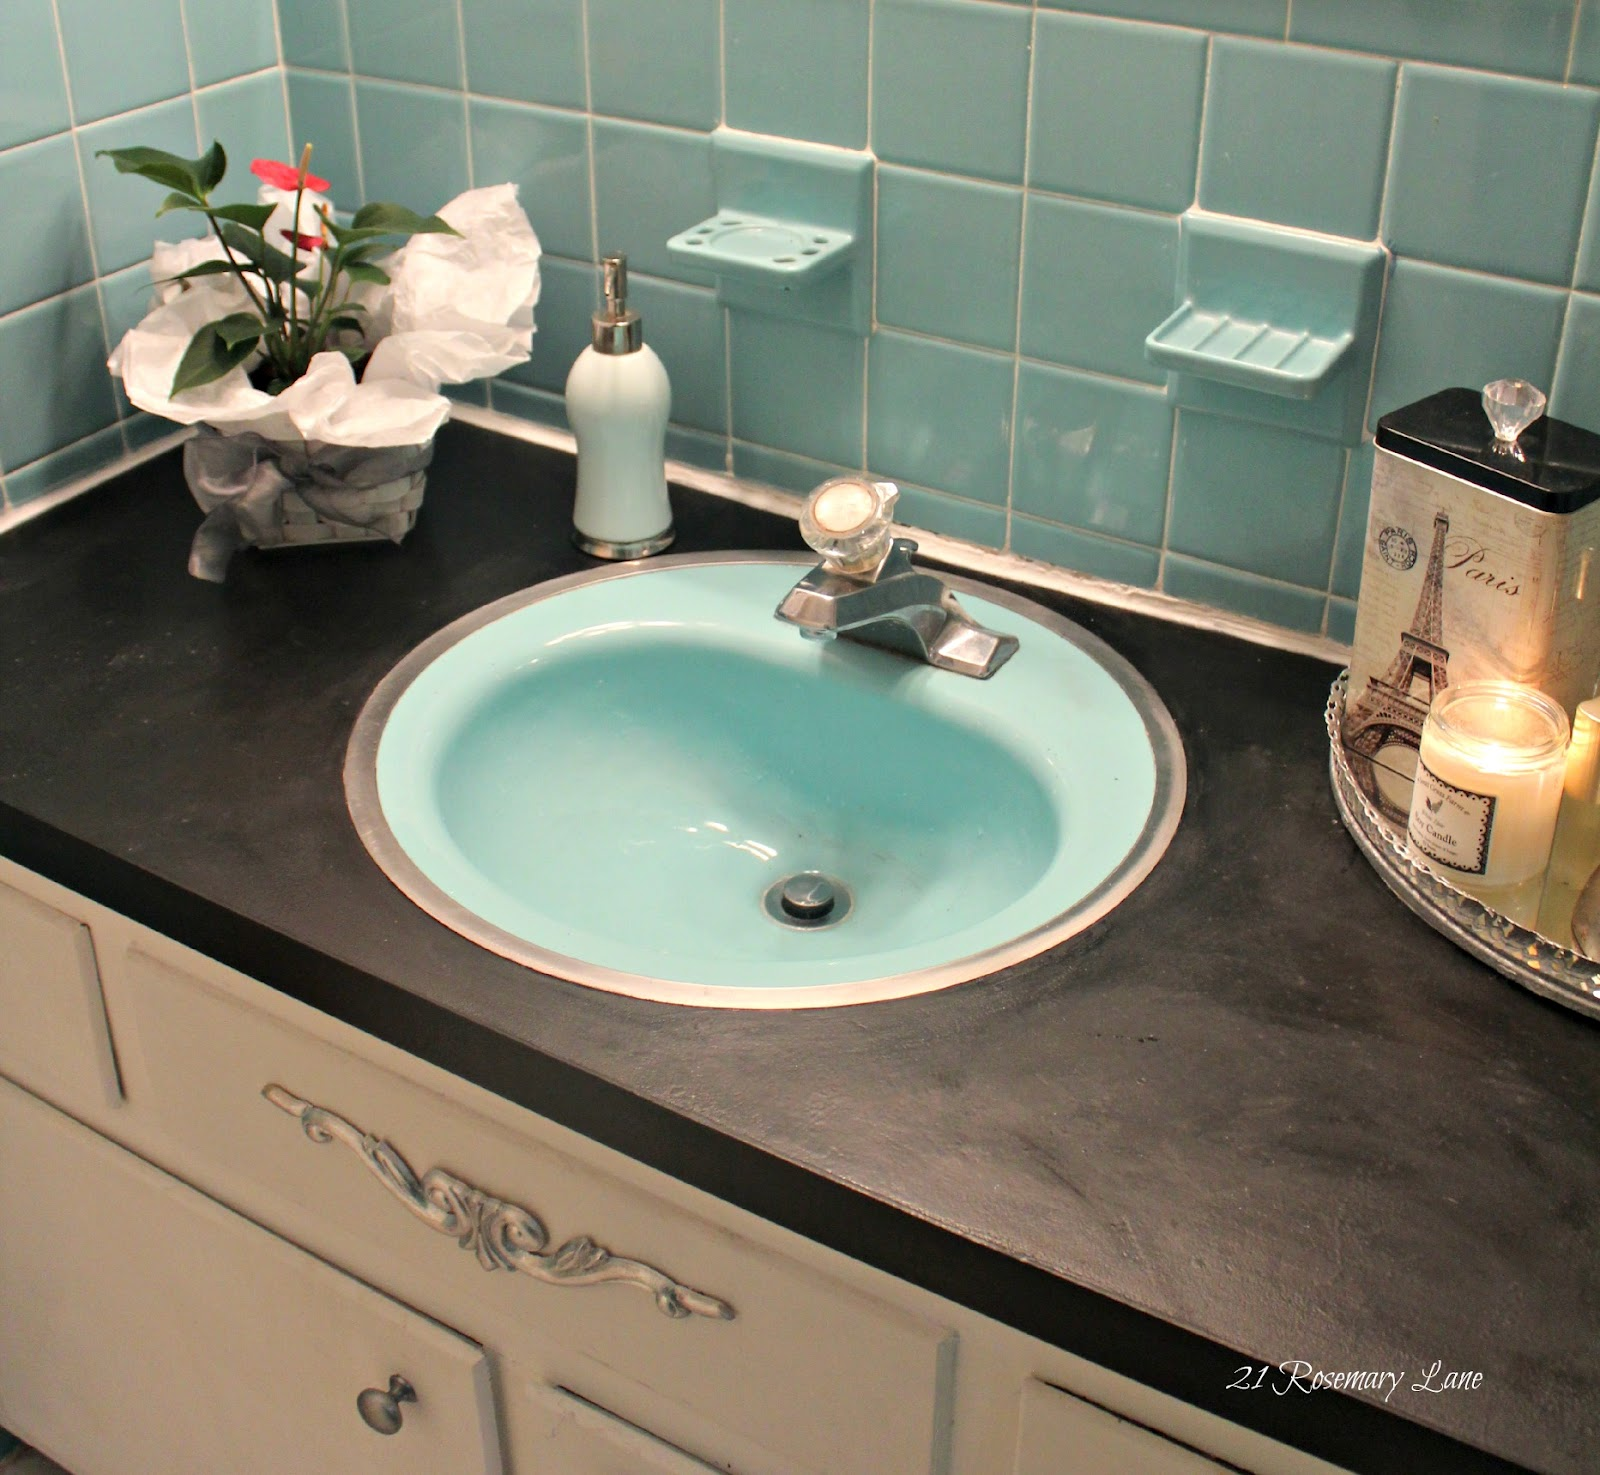 How to paint bathroom countertops - I Even Went So Far As To Paint The Frame Of The Mirror Above The Sink